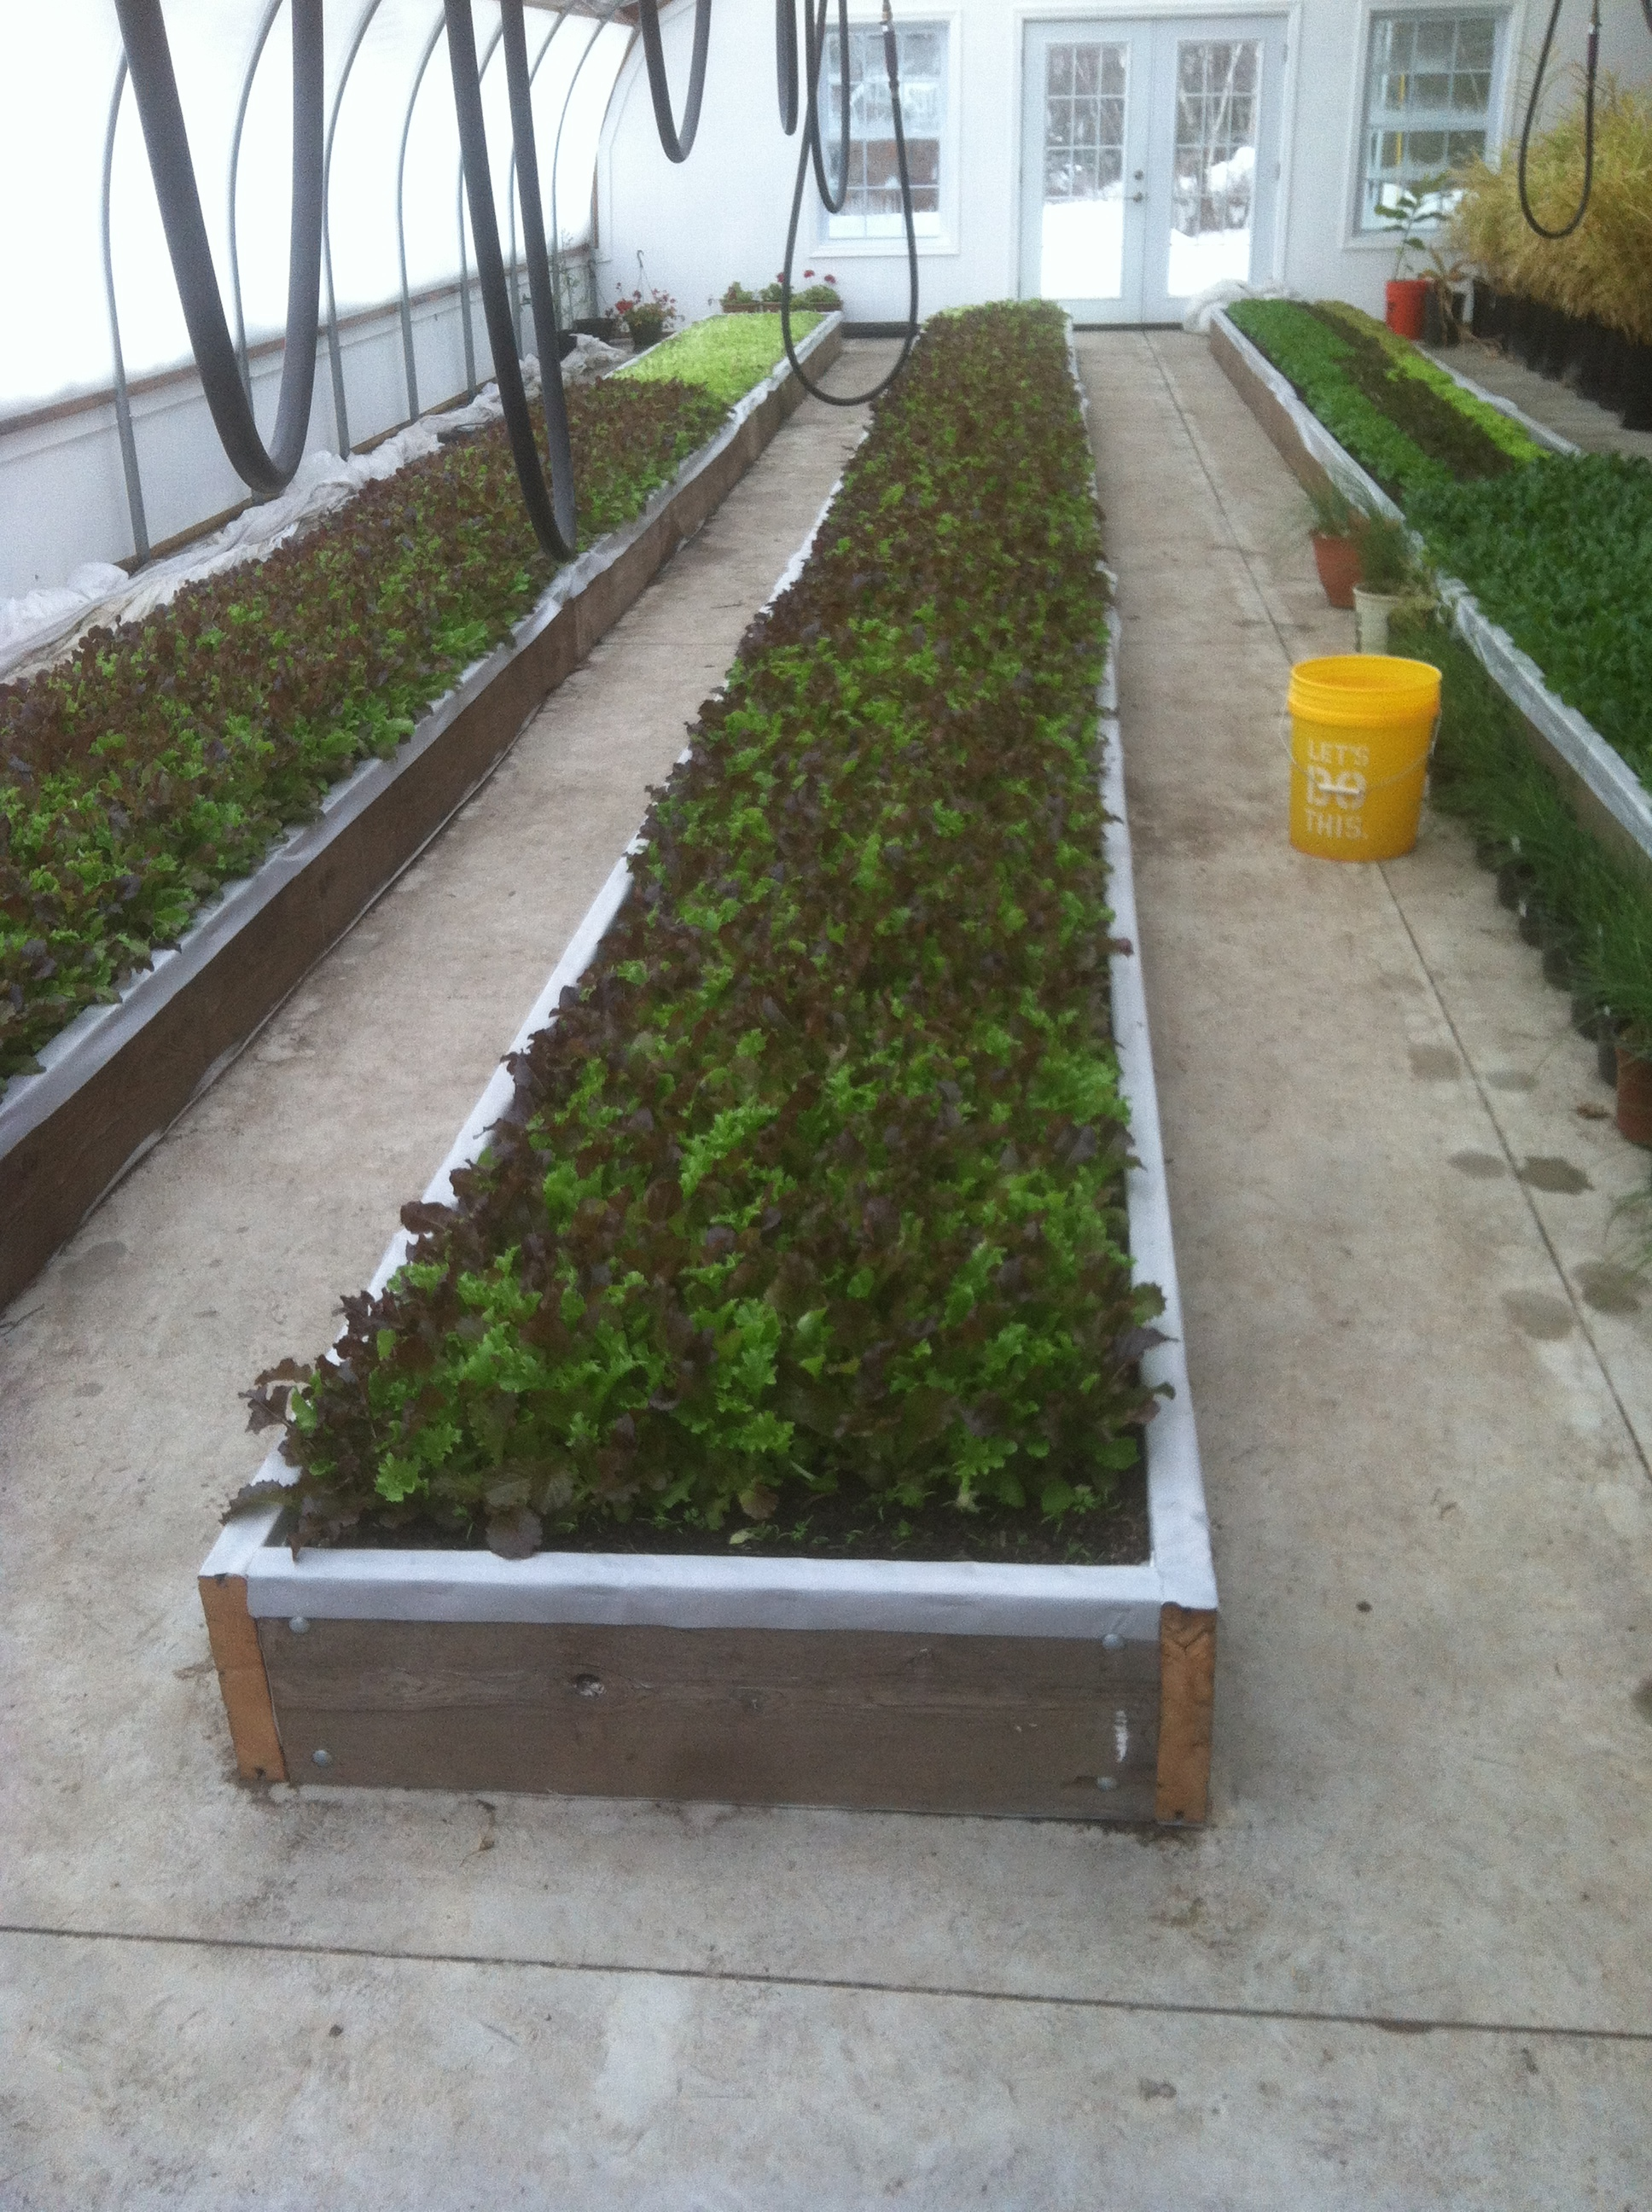 Raised beds with salad greens.